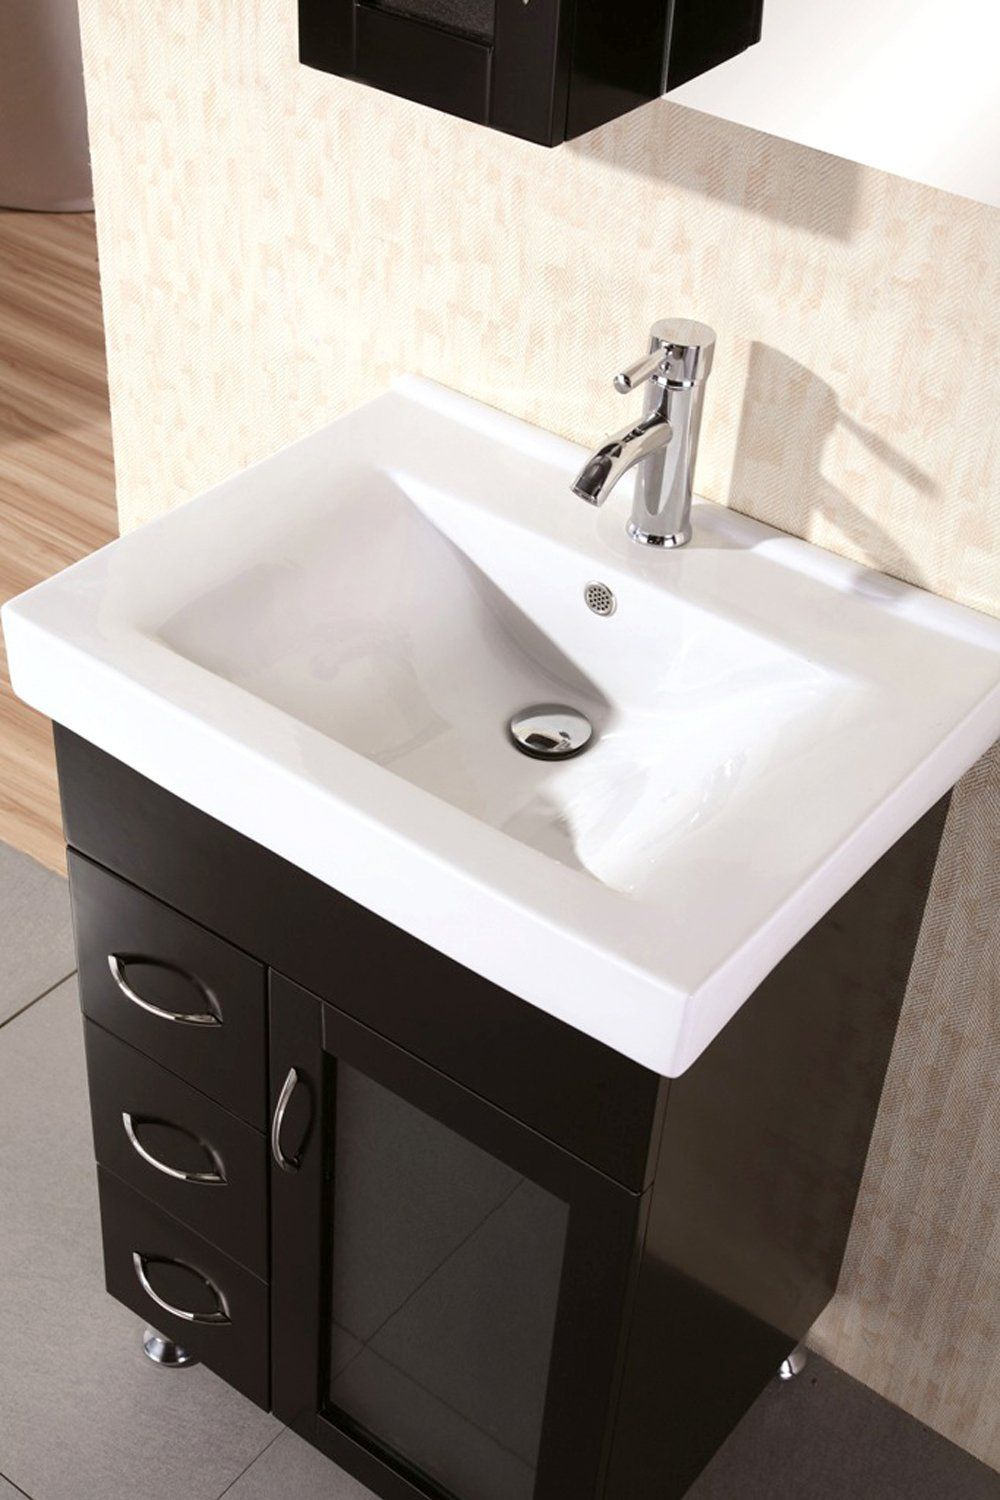 Design Element Oslo Single Porcelain Integrated Drop In Countertop And Sink  Vanity Set, 24 Inch   Bathroom Vanities   Amazon.com